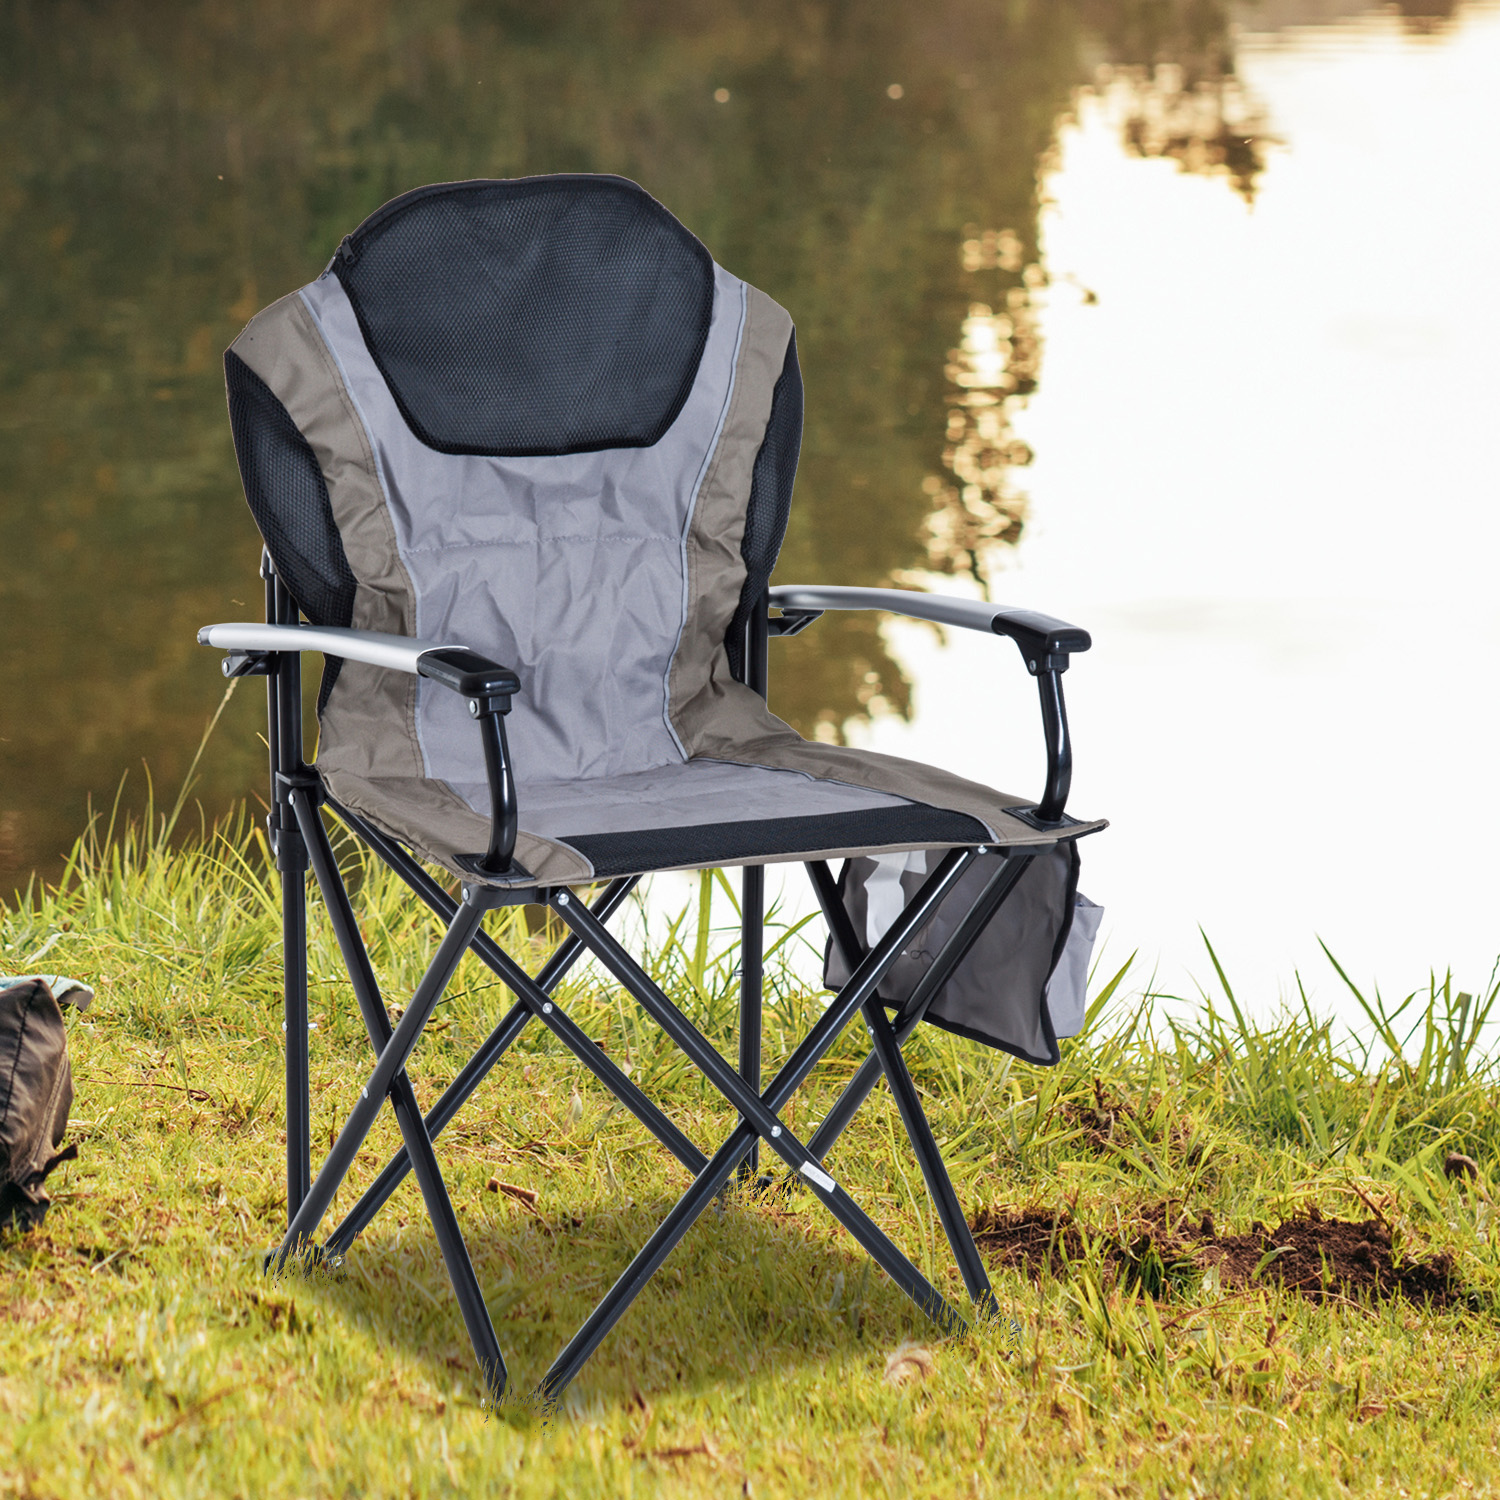 Camping Lounge Chair Outdoor Folding Padded Camping Chair Garden Picnic Fishing